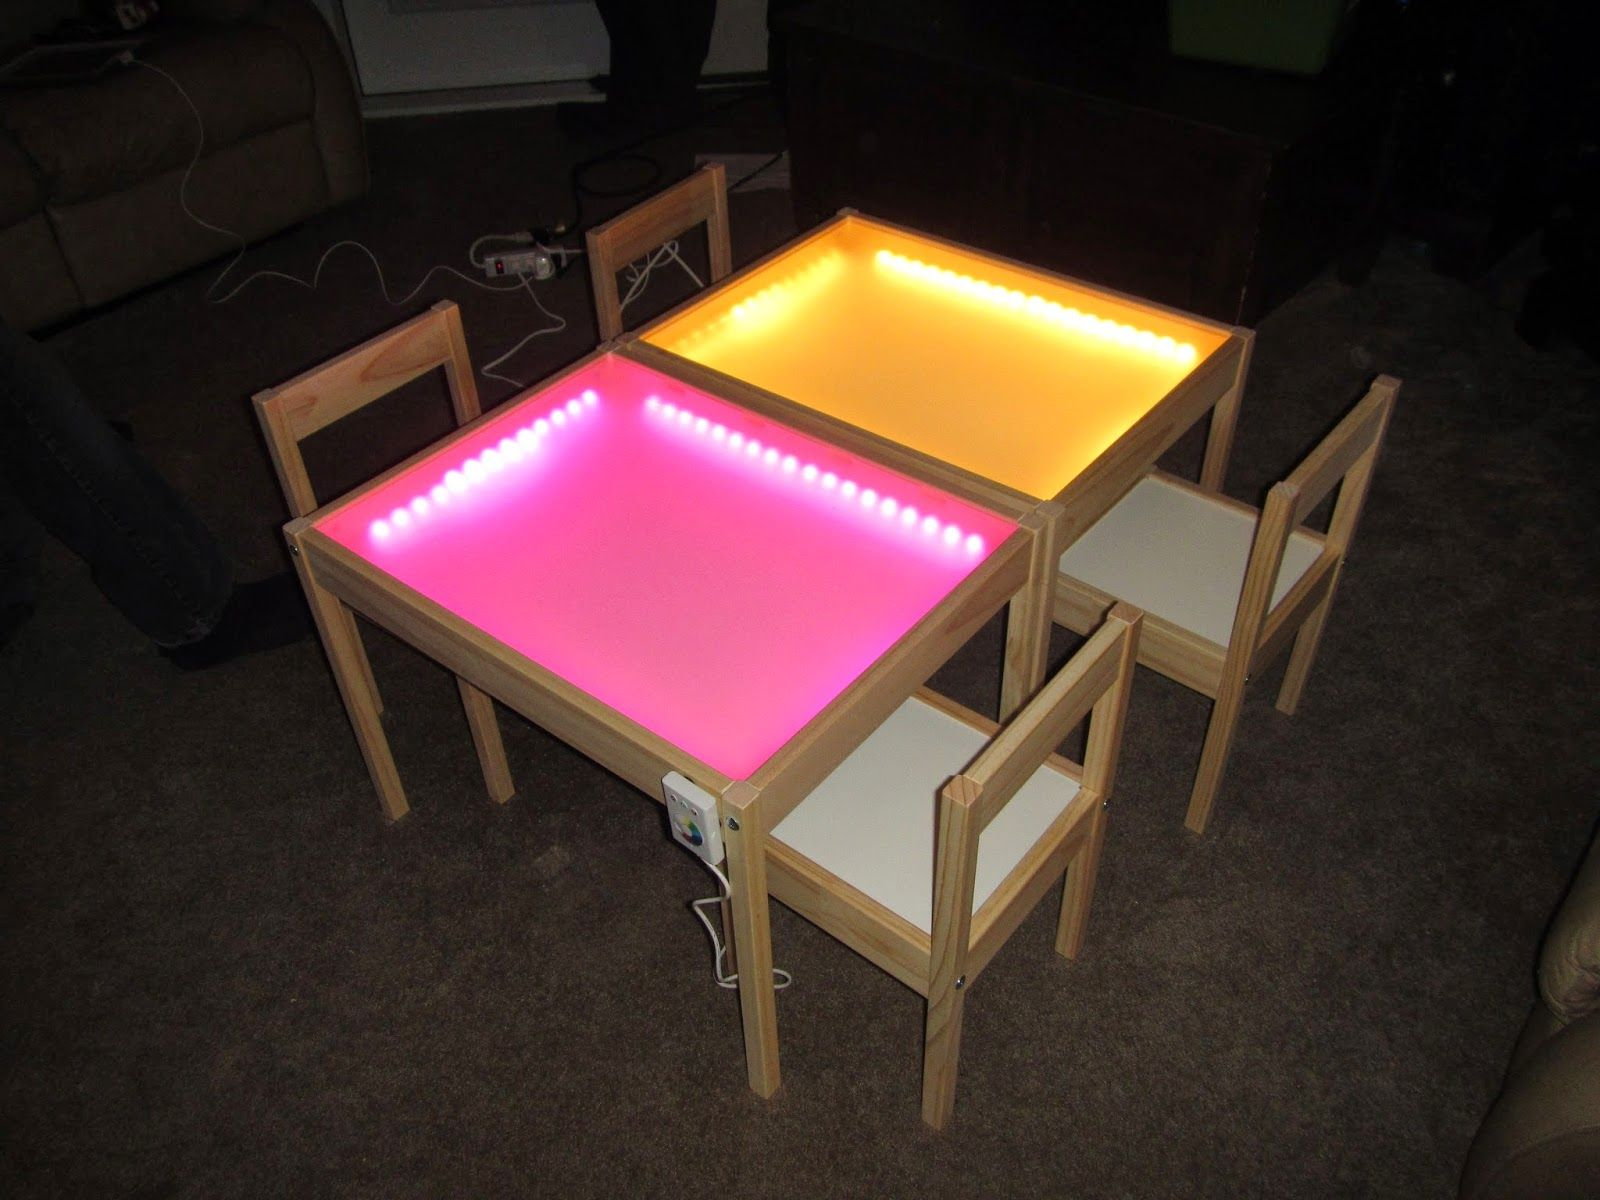 light table tisch led streifen plexiglas eventuell mit austauschbaren platten so dass nur. Black Bedroom Furniture Sets. Home Design Ideas